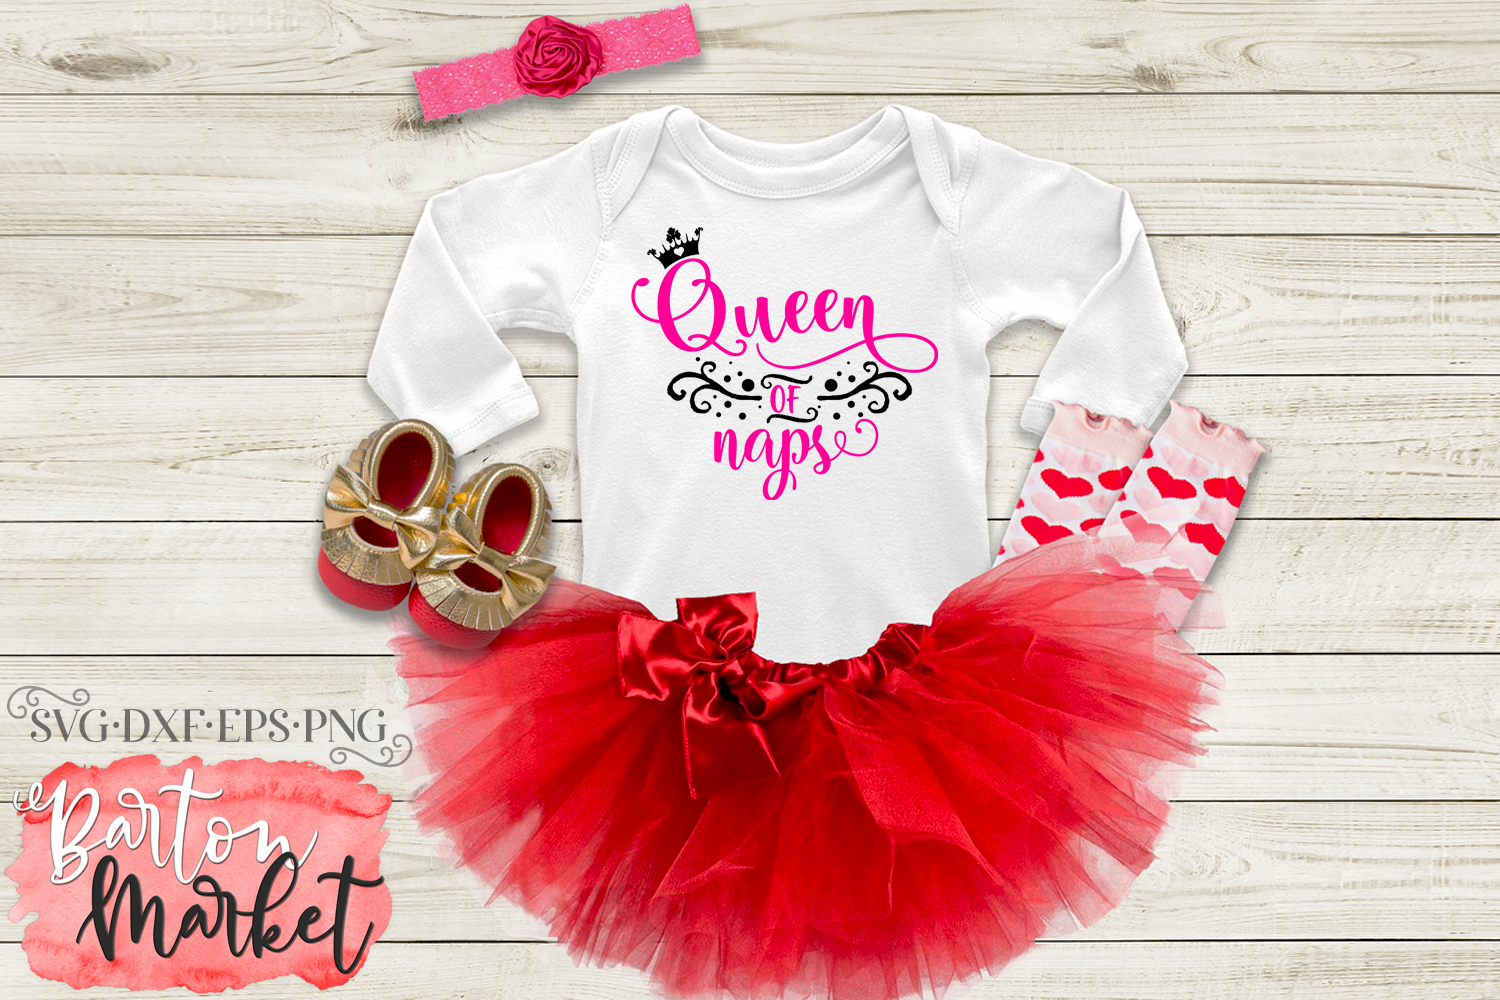 Queen of Naps SVG DXF EPS PNG example image 1